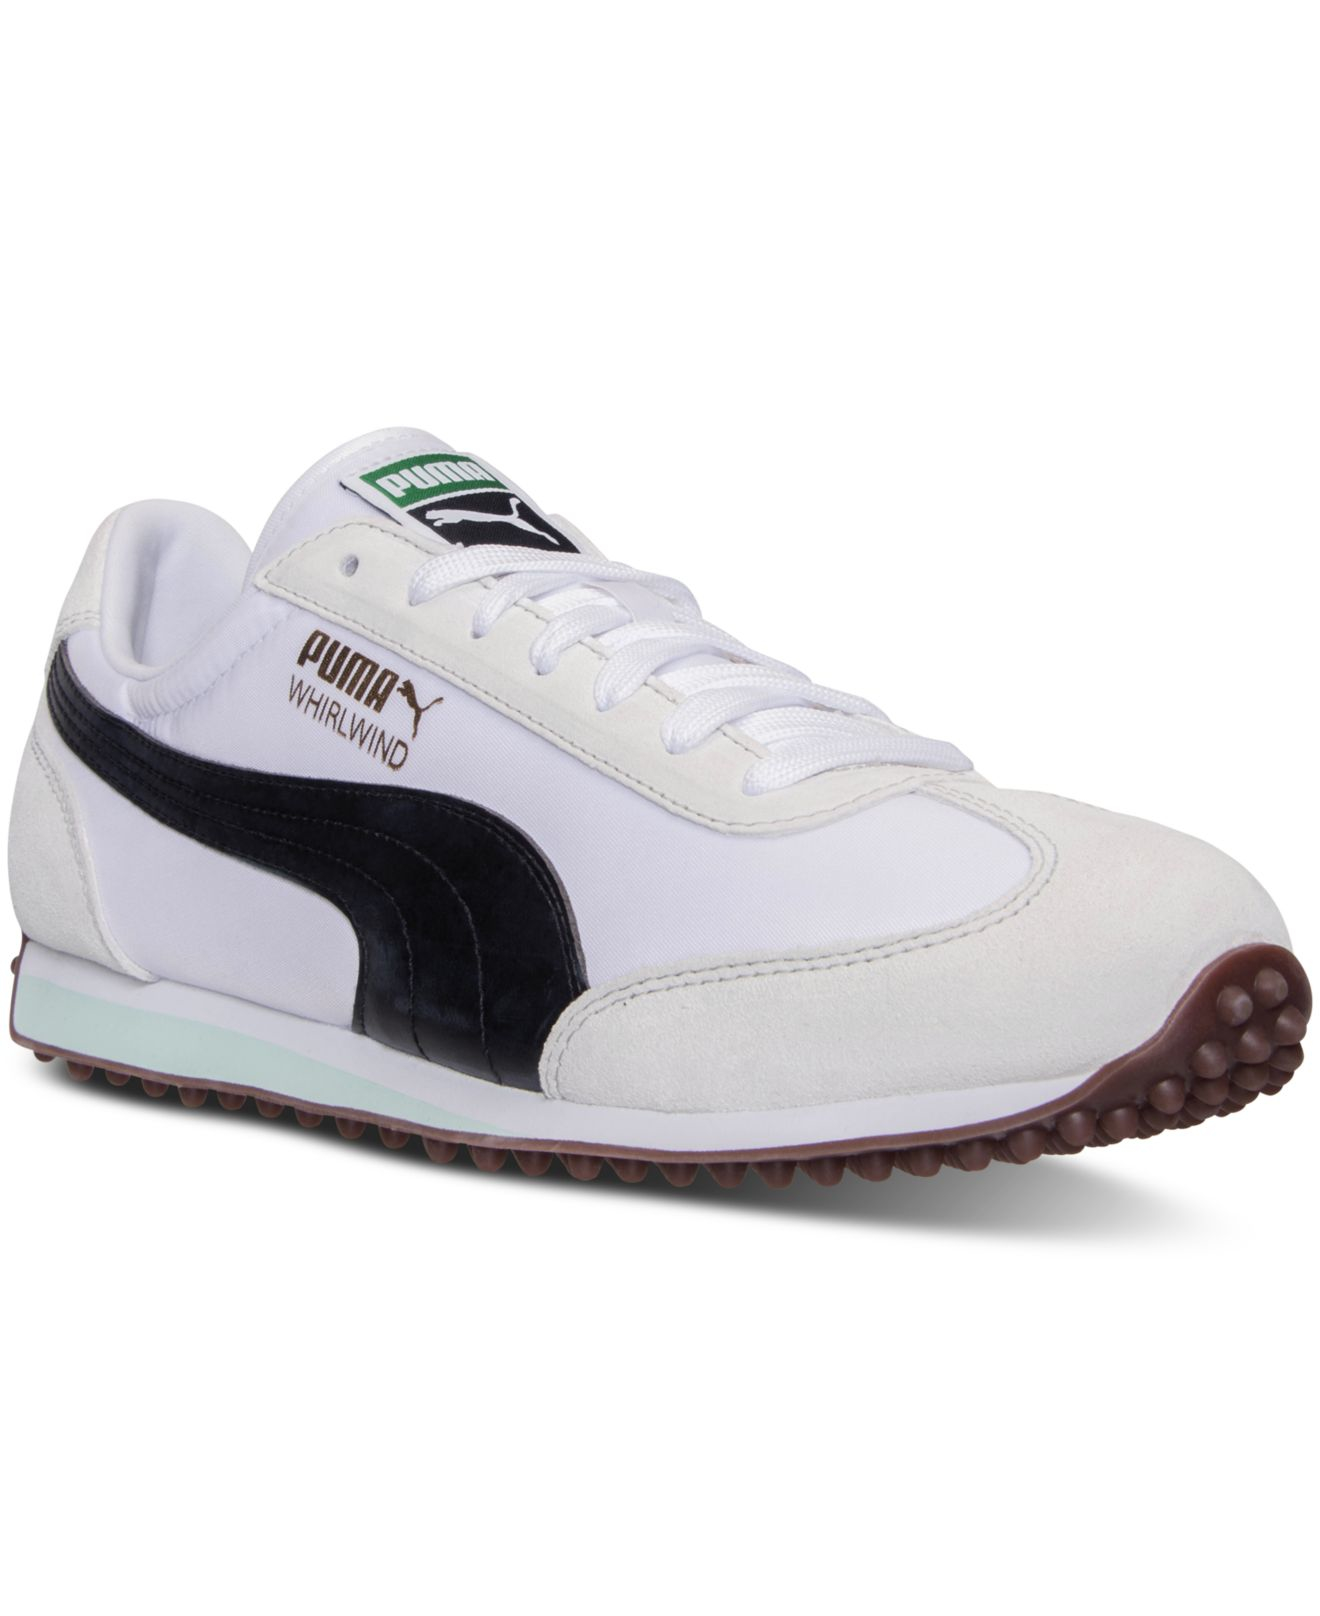 35c64323261b Lyst - PUMA Men s Whirlwind Classics Casual Sneakers From Finish ...